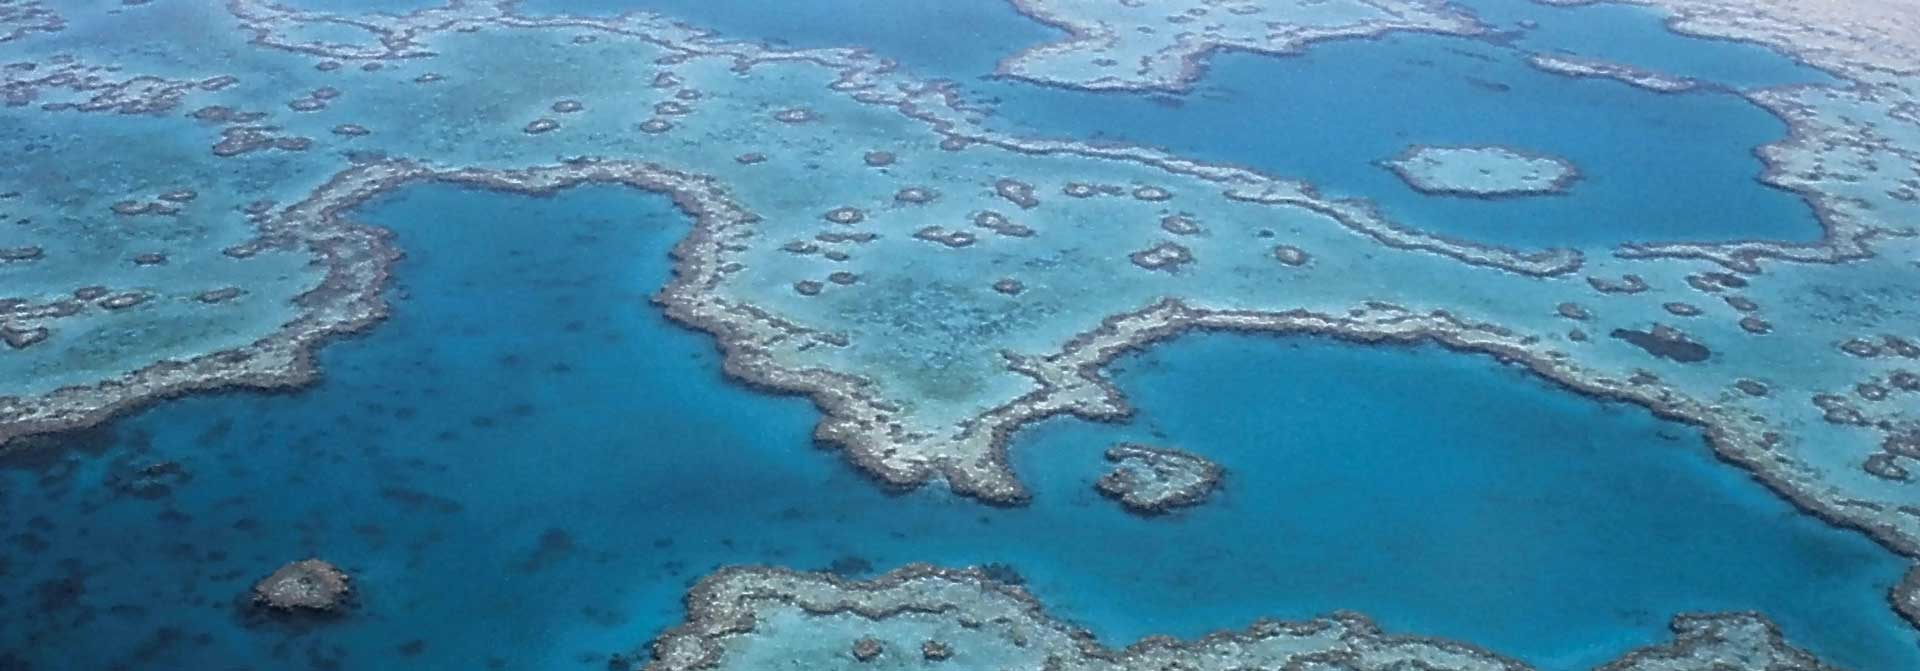 Bird's eye image of great barrier reef in queensland